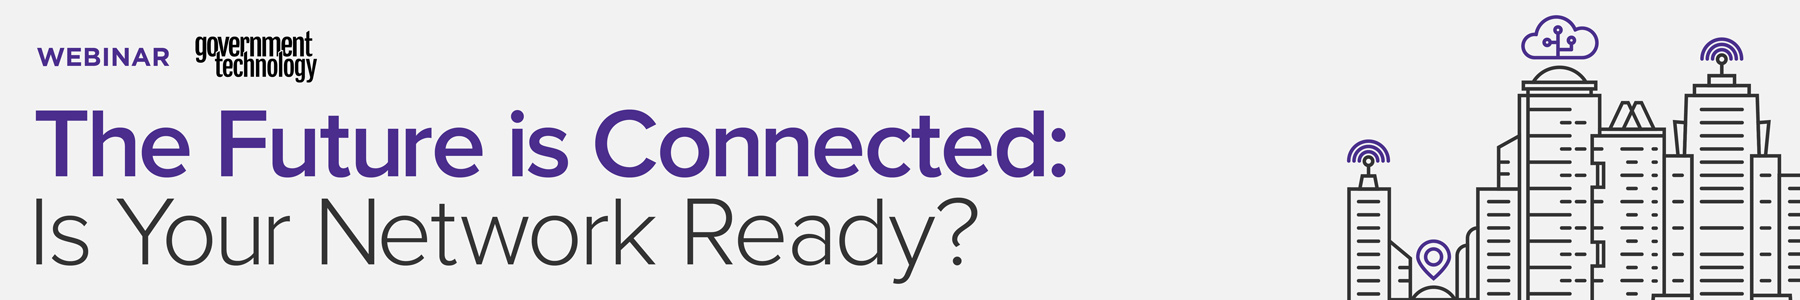 The Future is Connected: Is Your Network Ready?